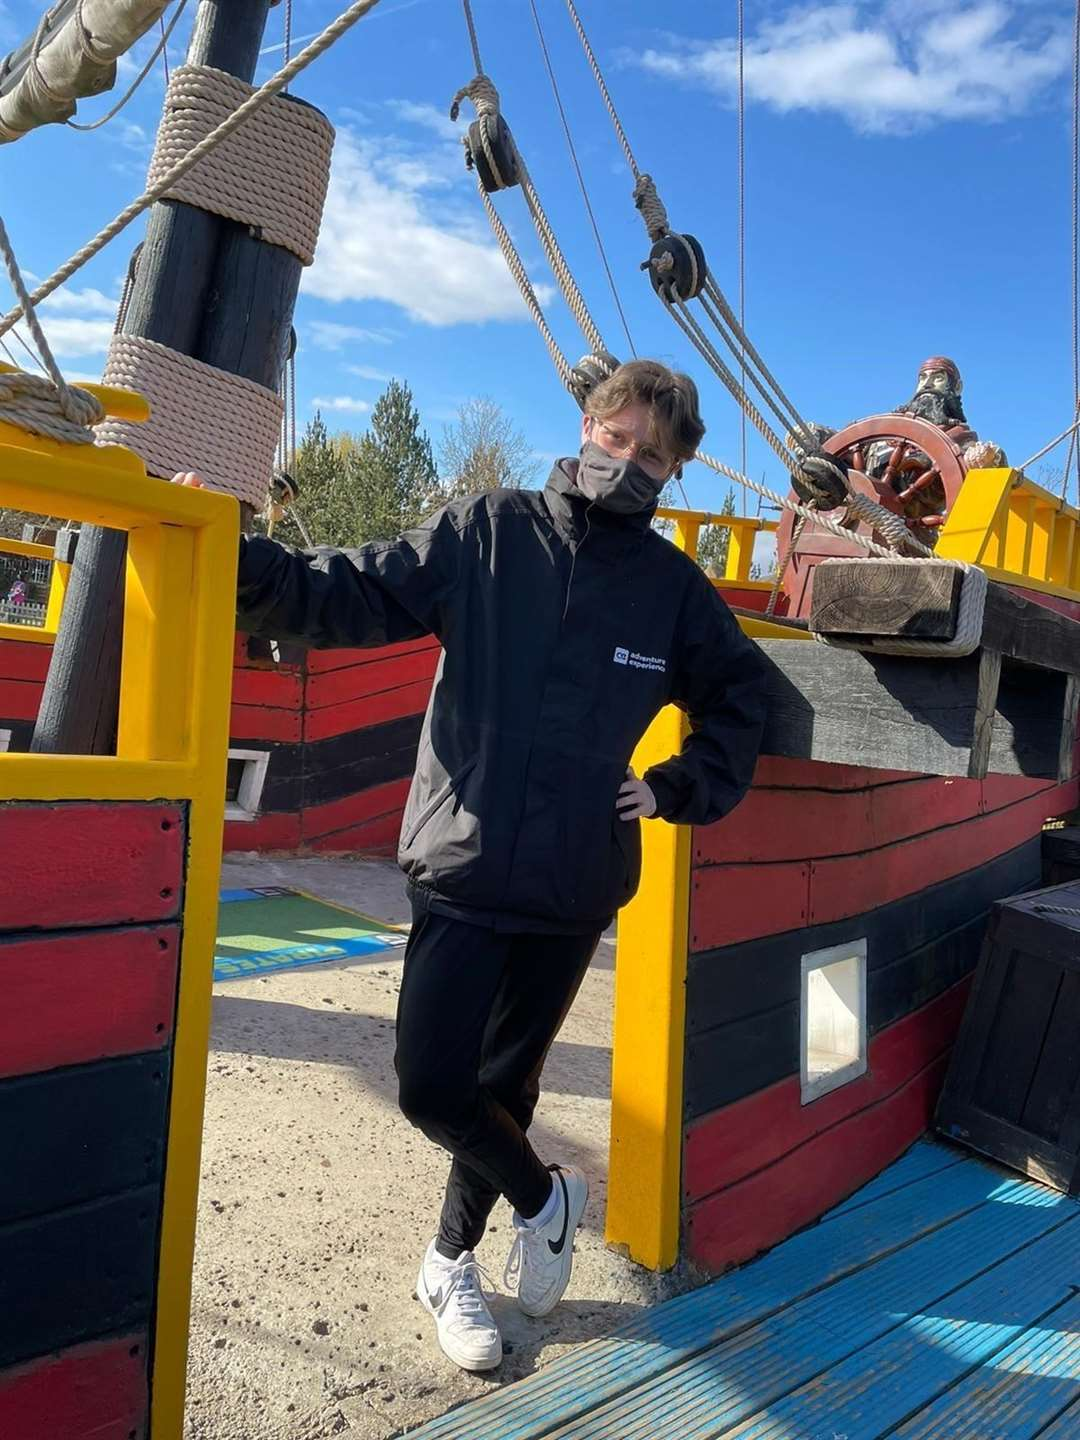 Pirate Cove, Bluewater, has launched a range of off-peak passes for unlimited play during term time